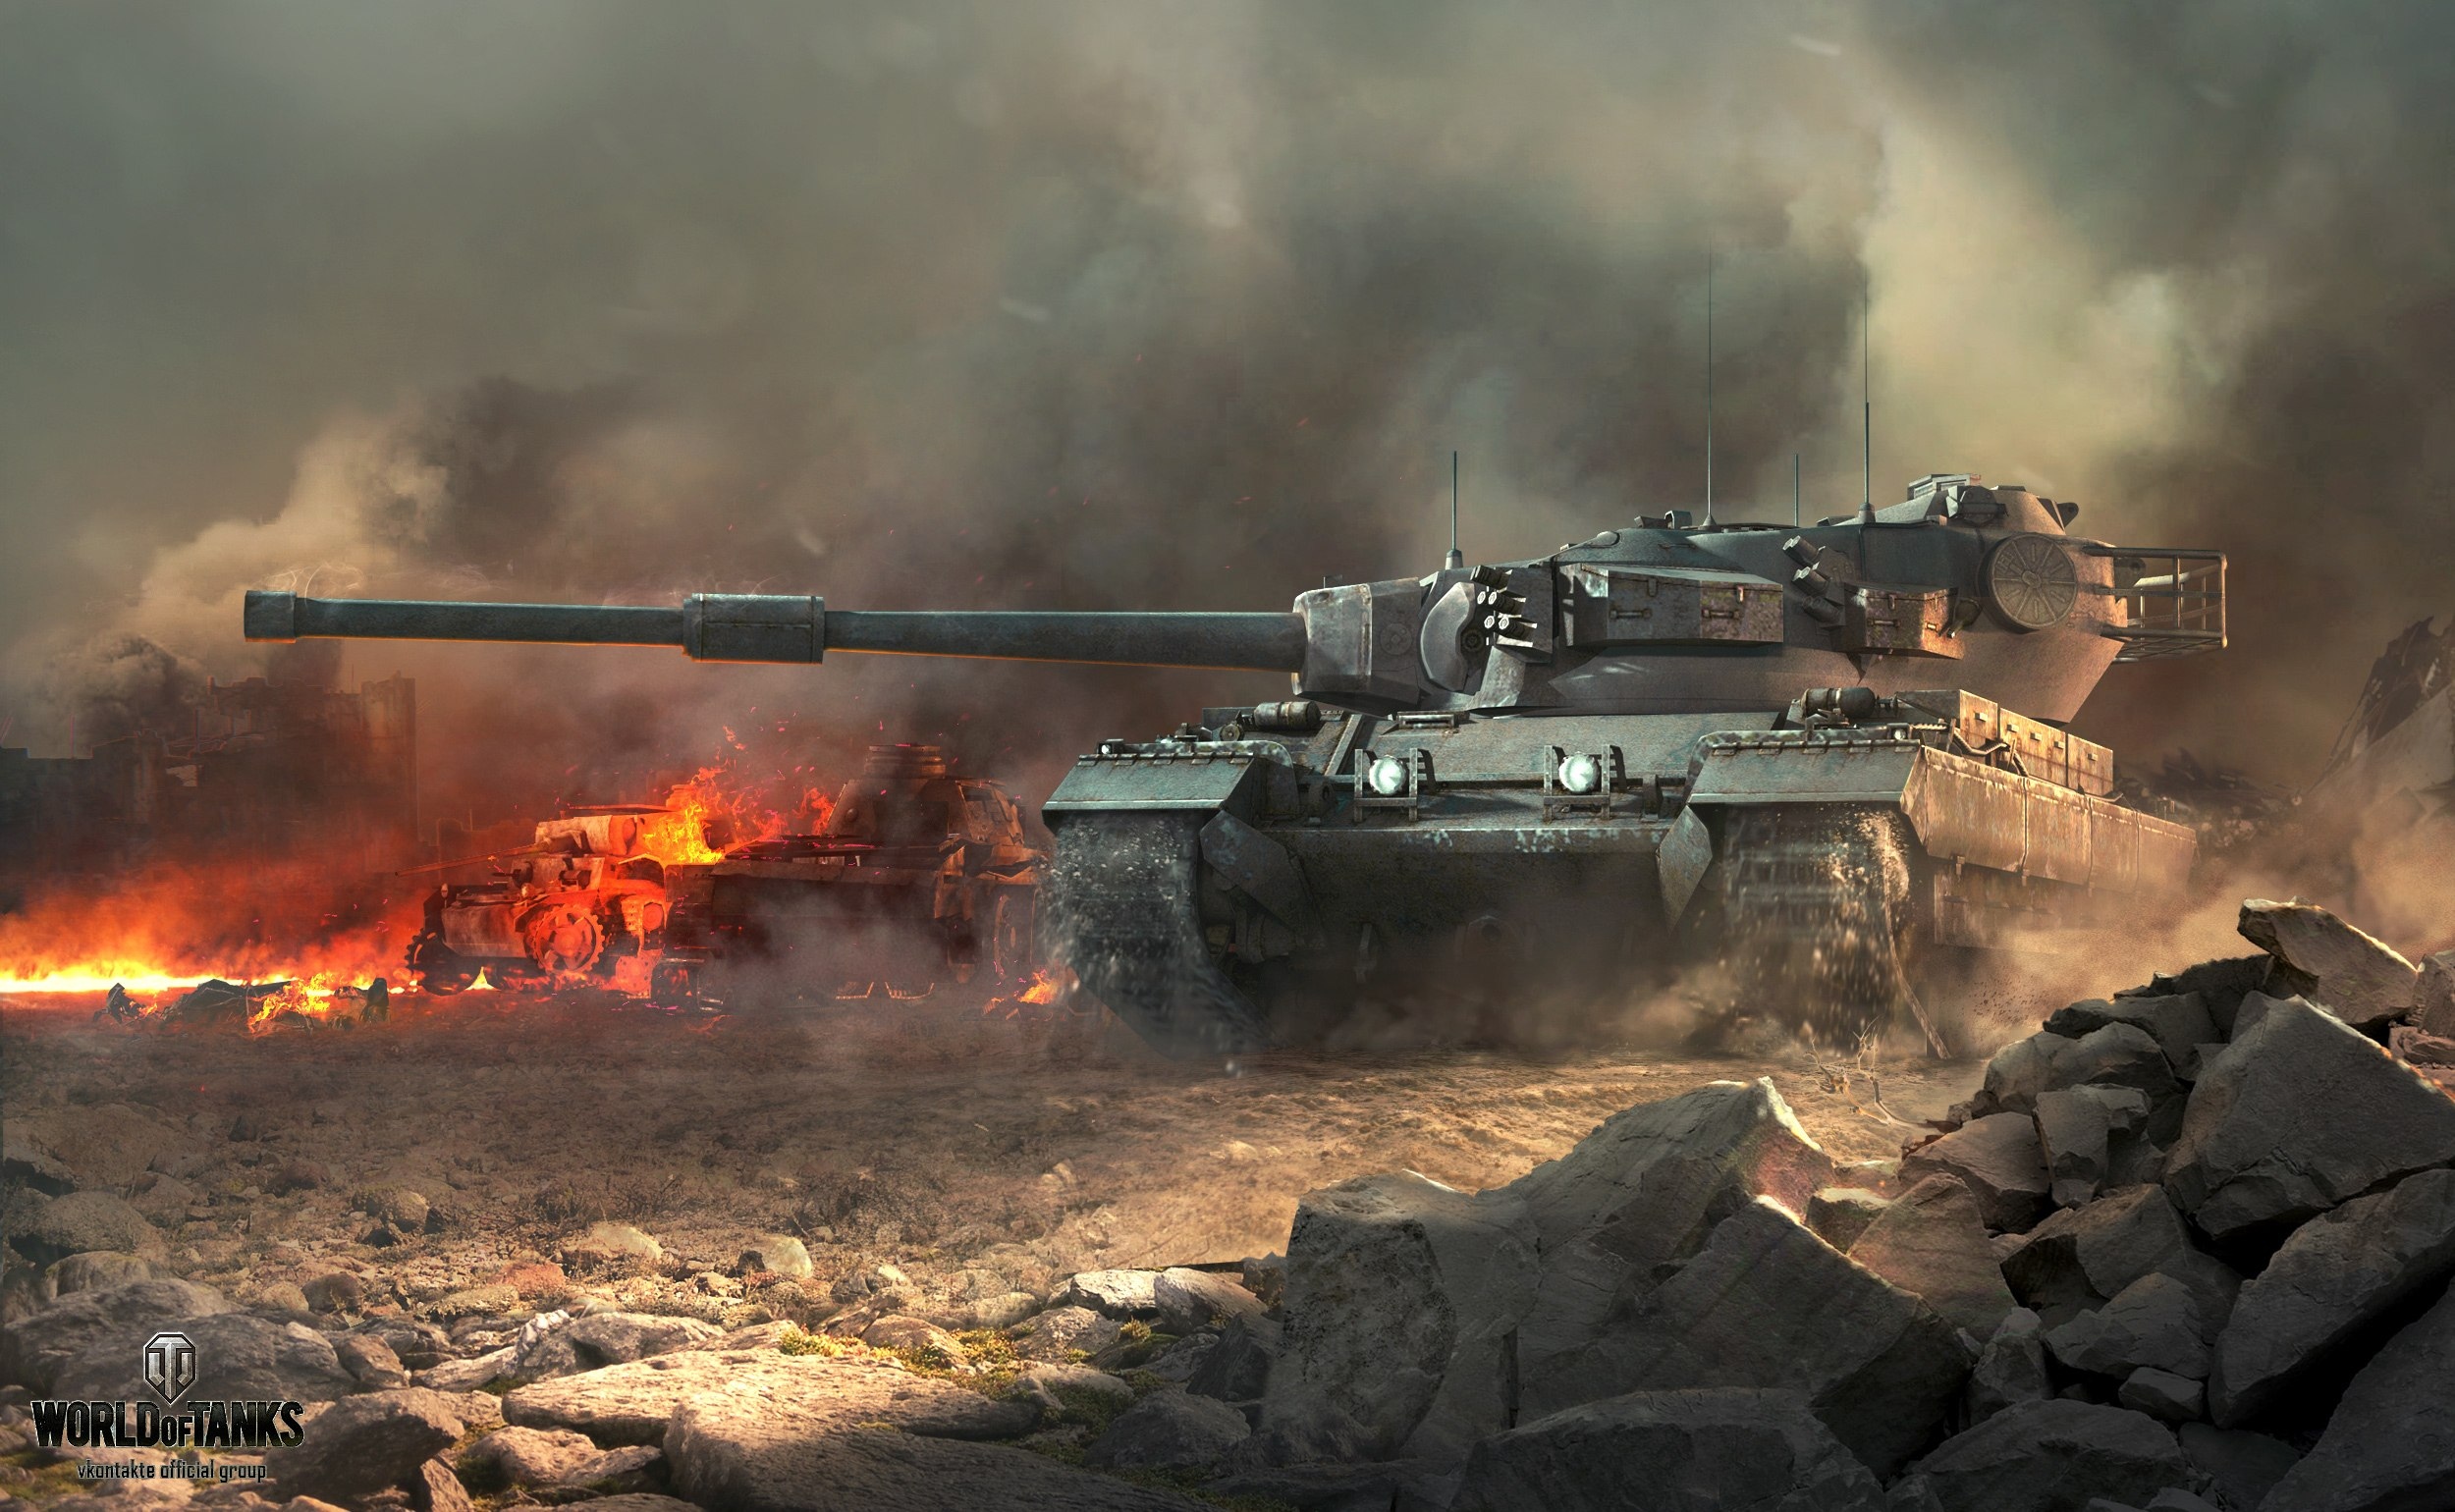 T_IHa2dWJVk.jpg - World of Tanks